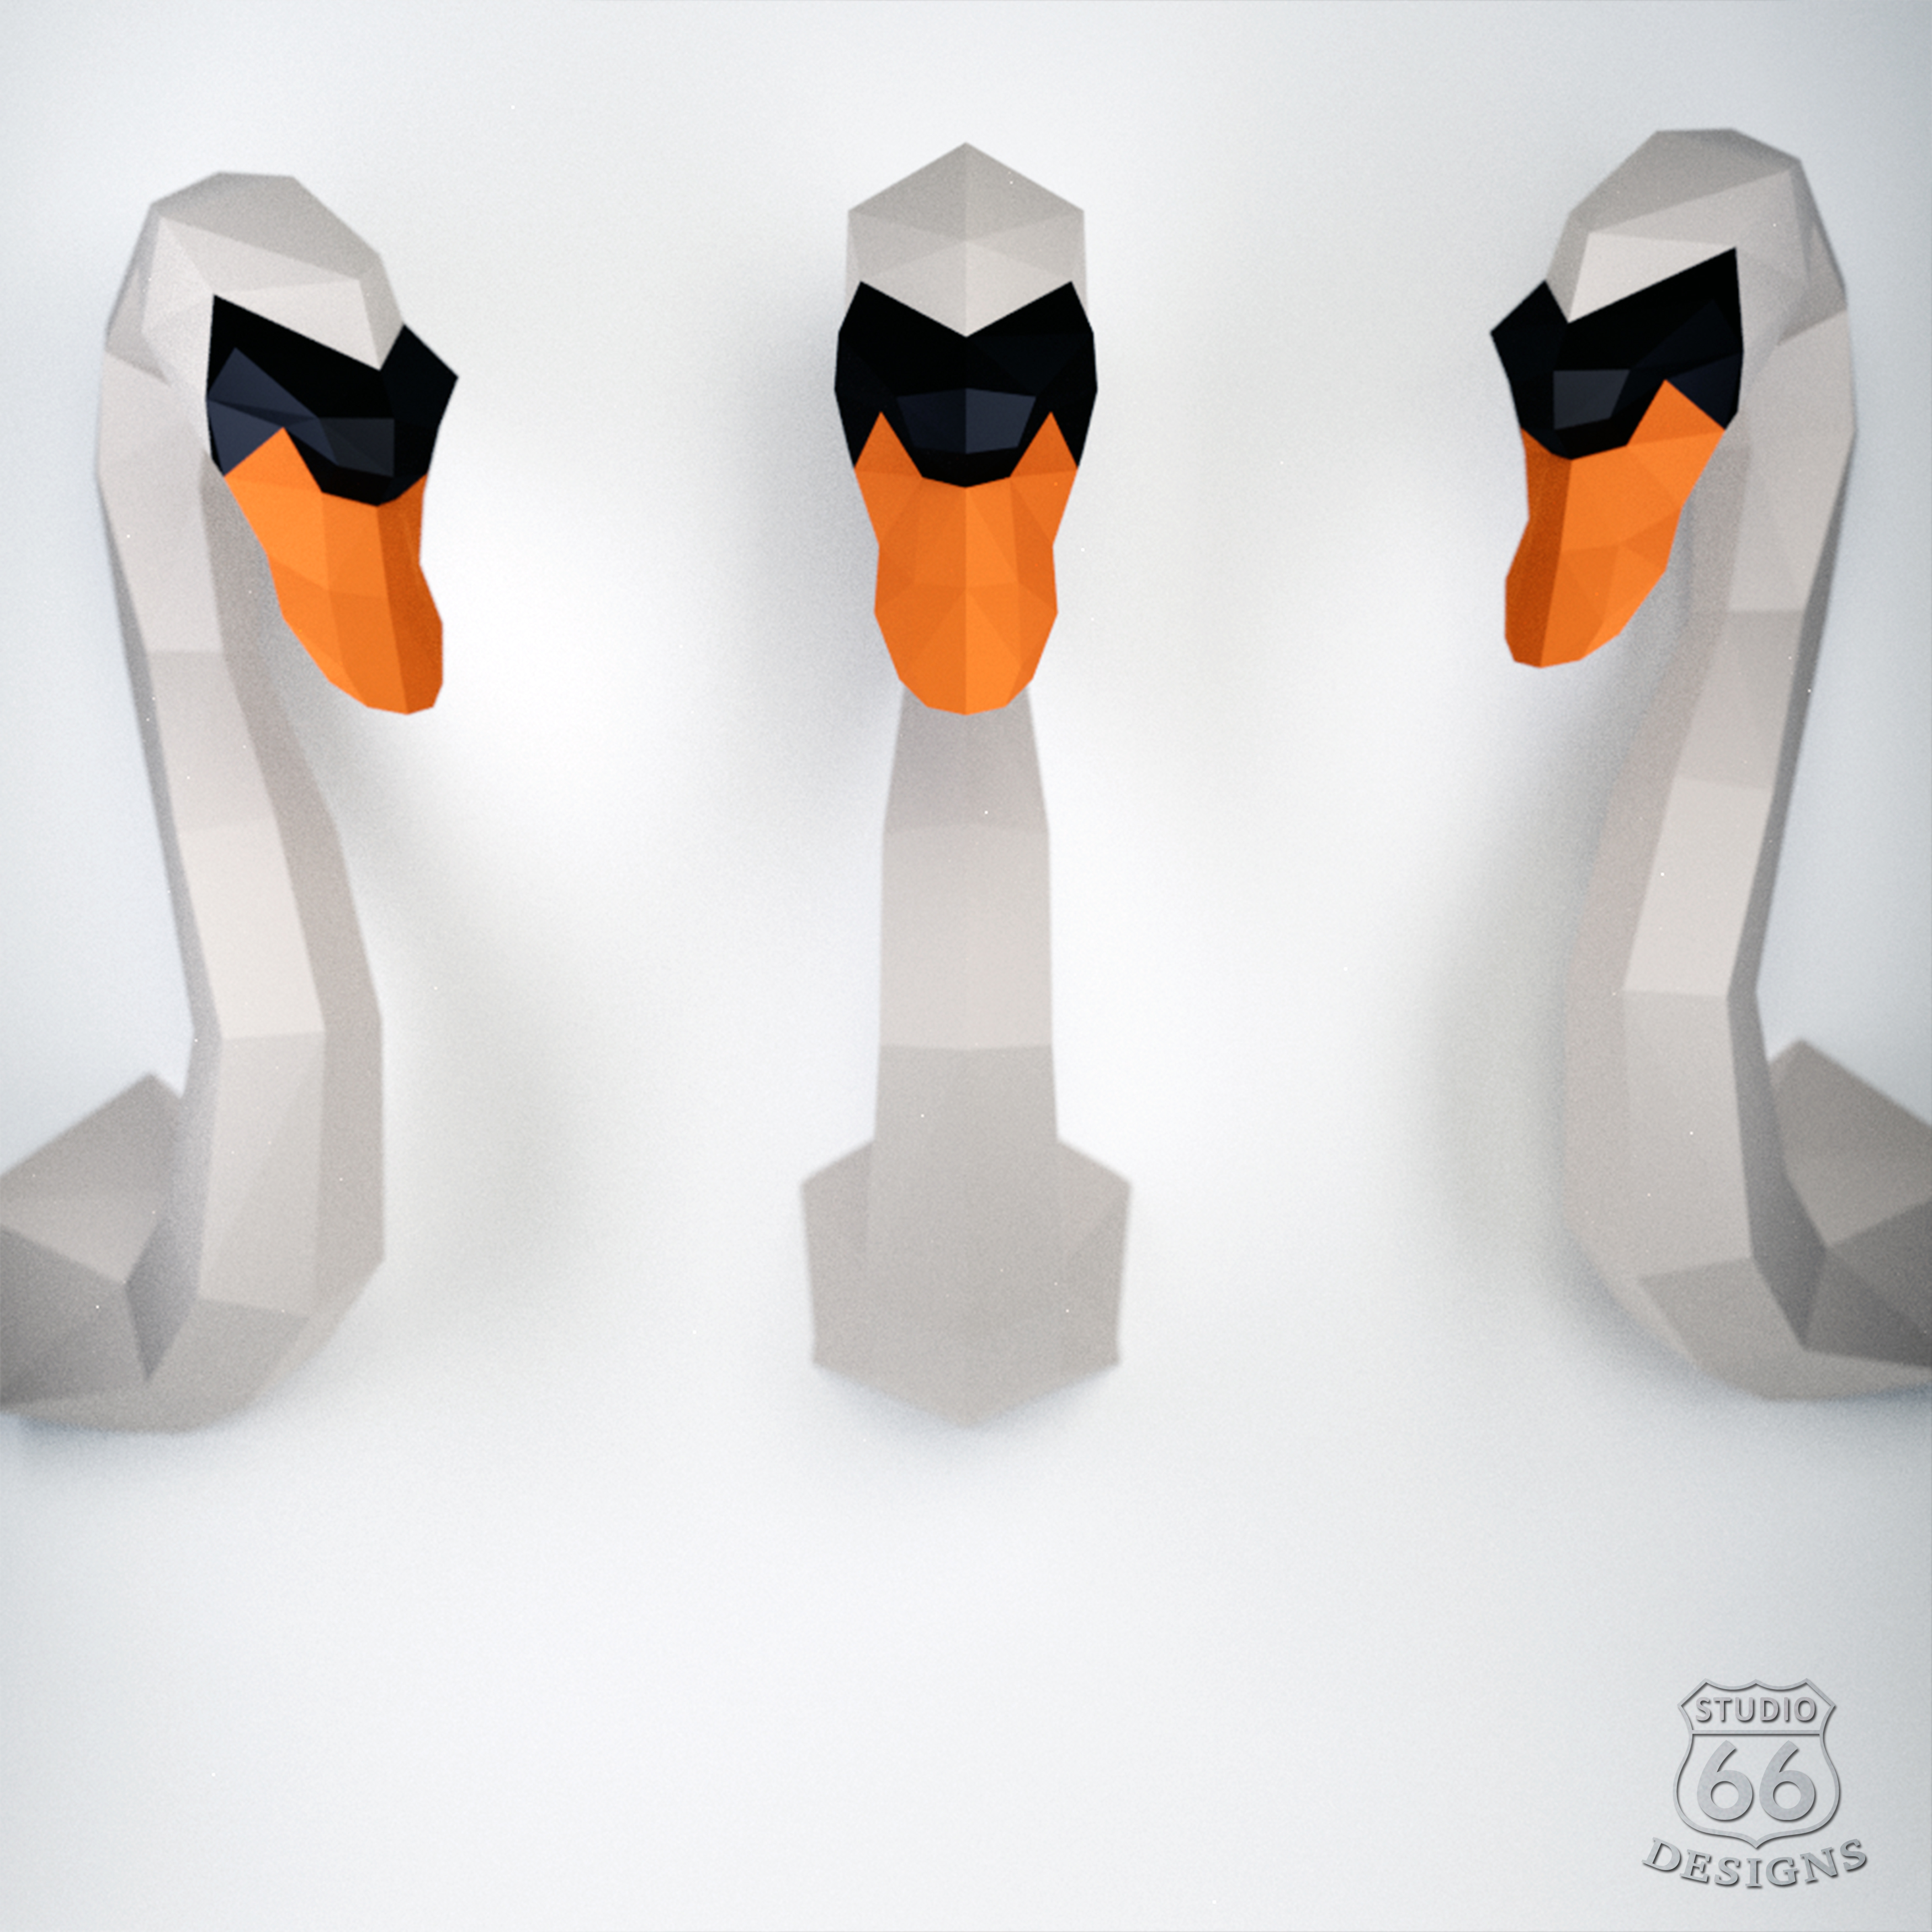 Paper Bird Origami Papercraft Swan Paper Craft Swan 3d Paper Craft Sculpture Paper Bird Origami Bird Decor Diy 3d Papercraft Lowpoly Statue Trophy Head